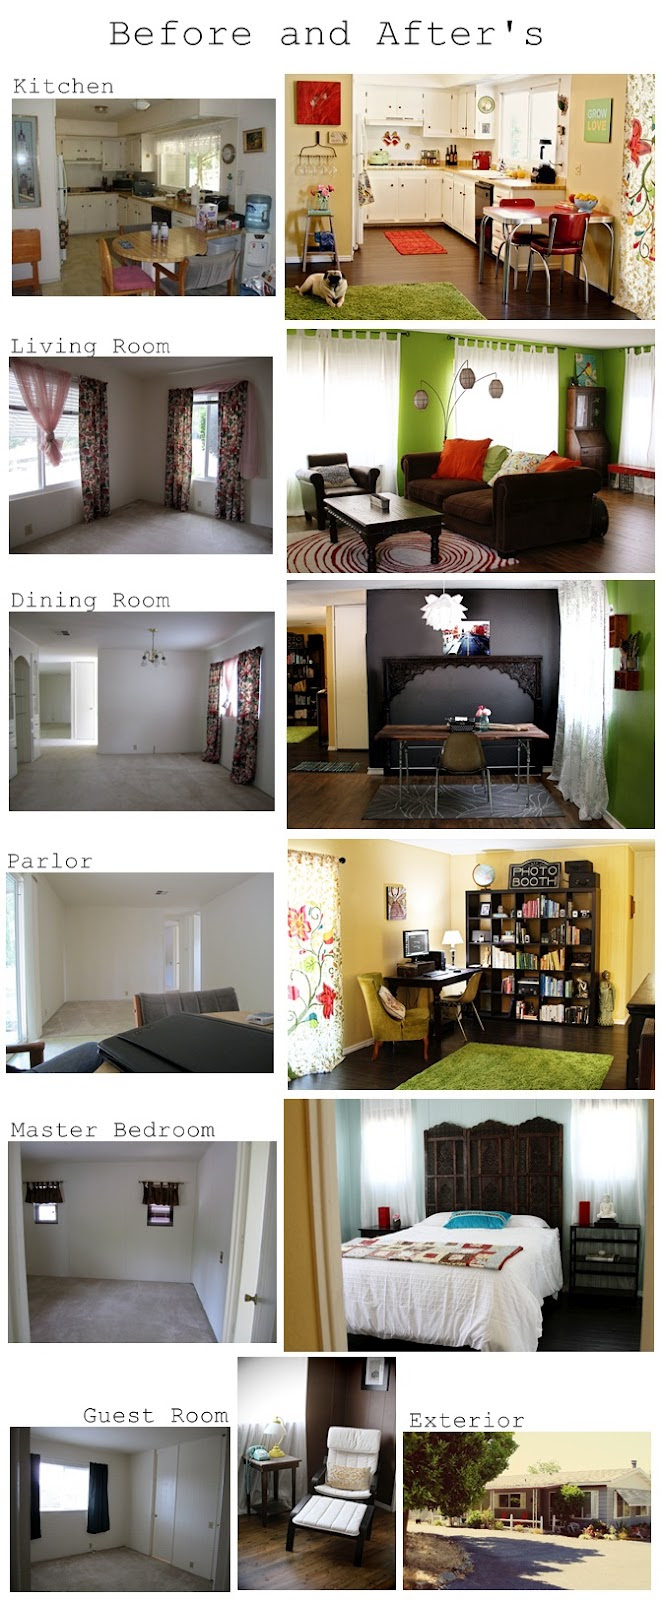 Living Room Decor In A Double Wide Mobile Home | Joy ...